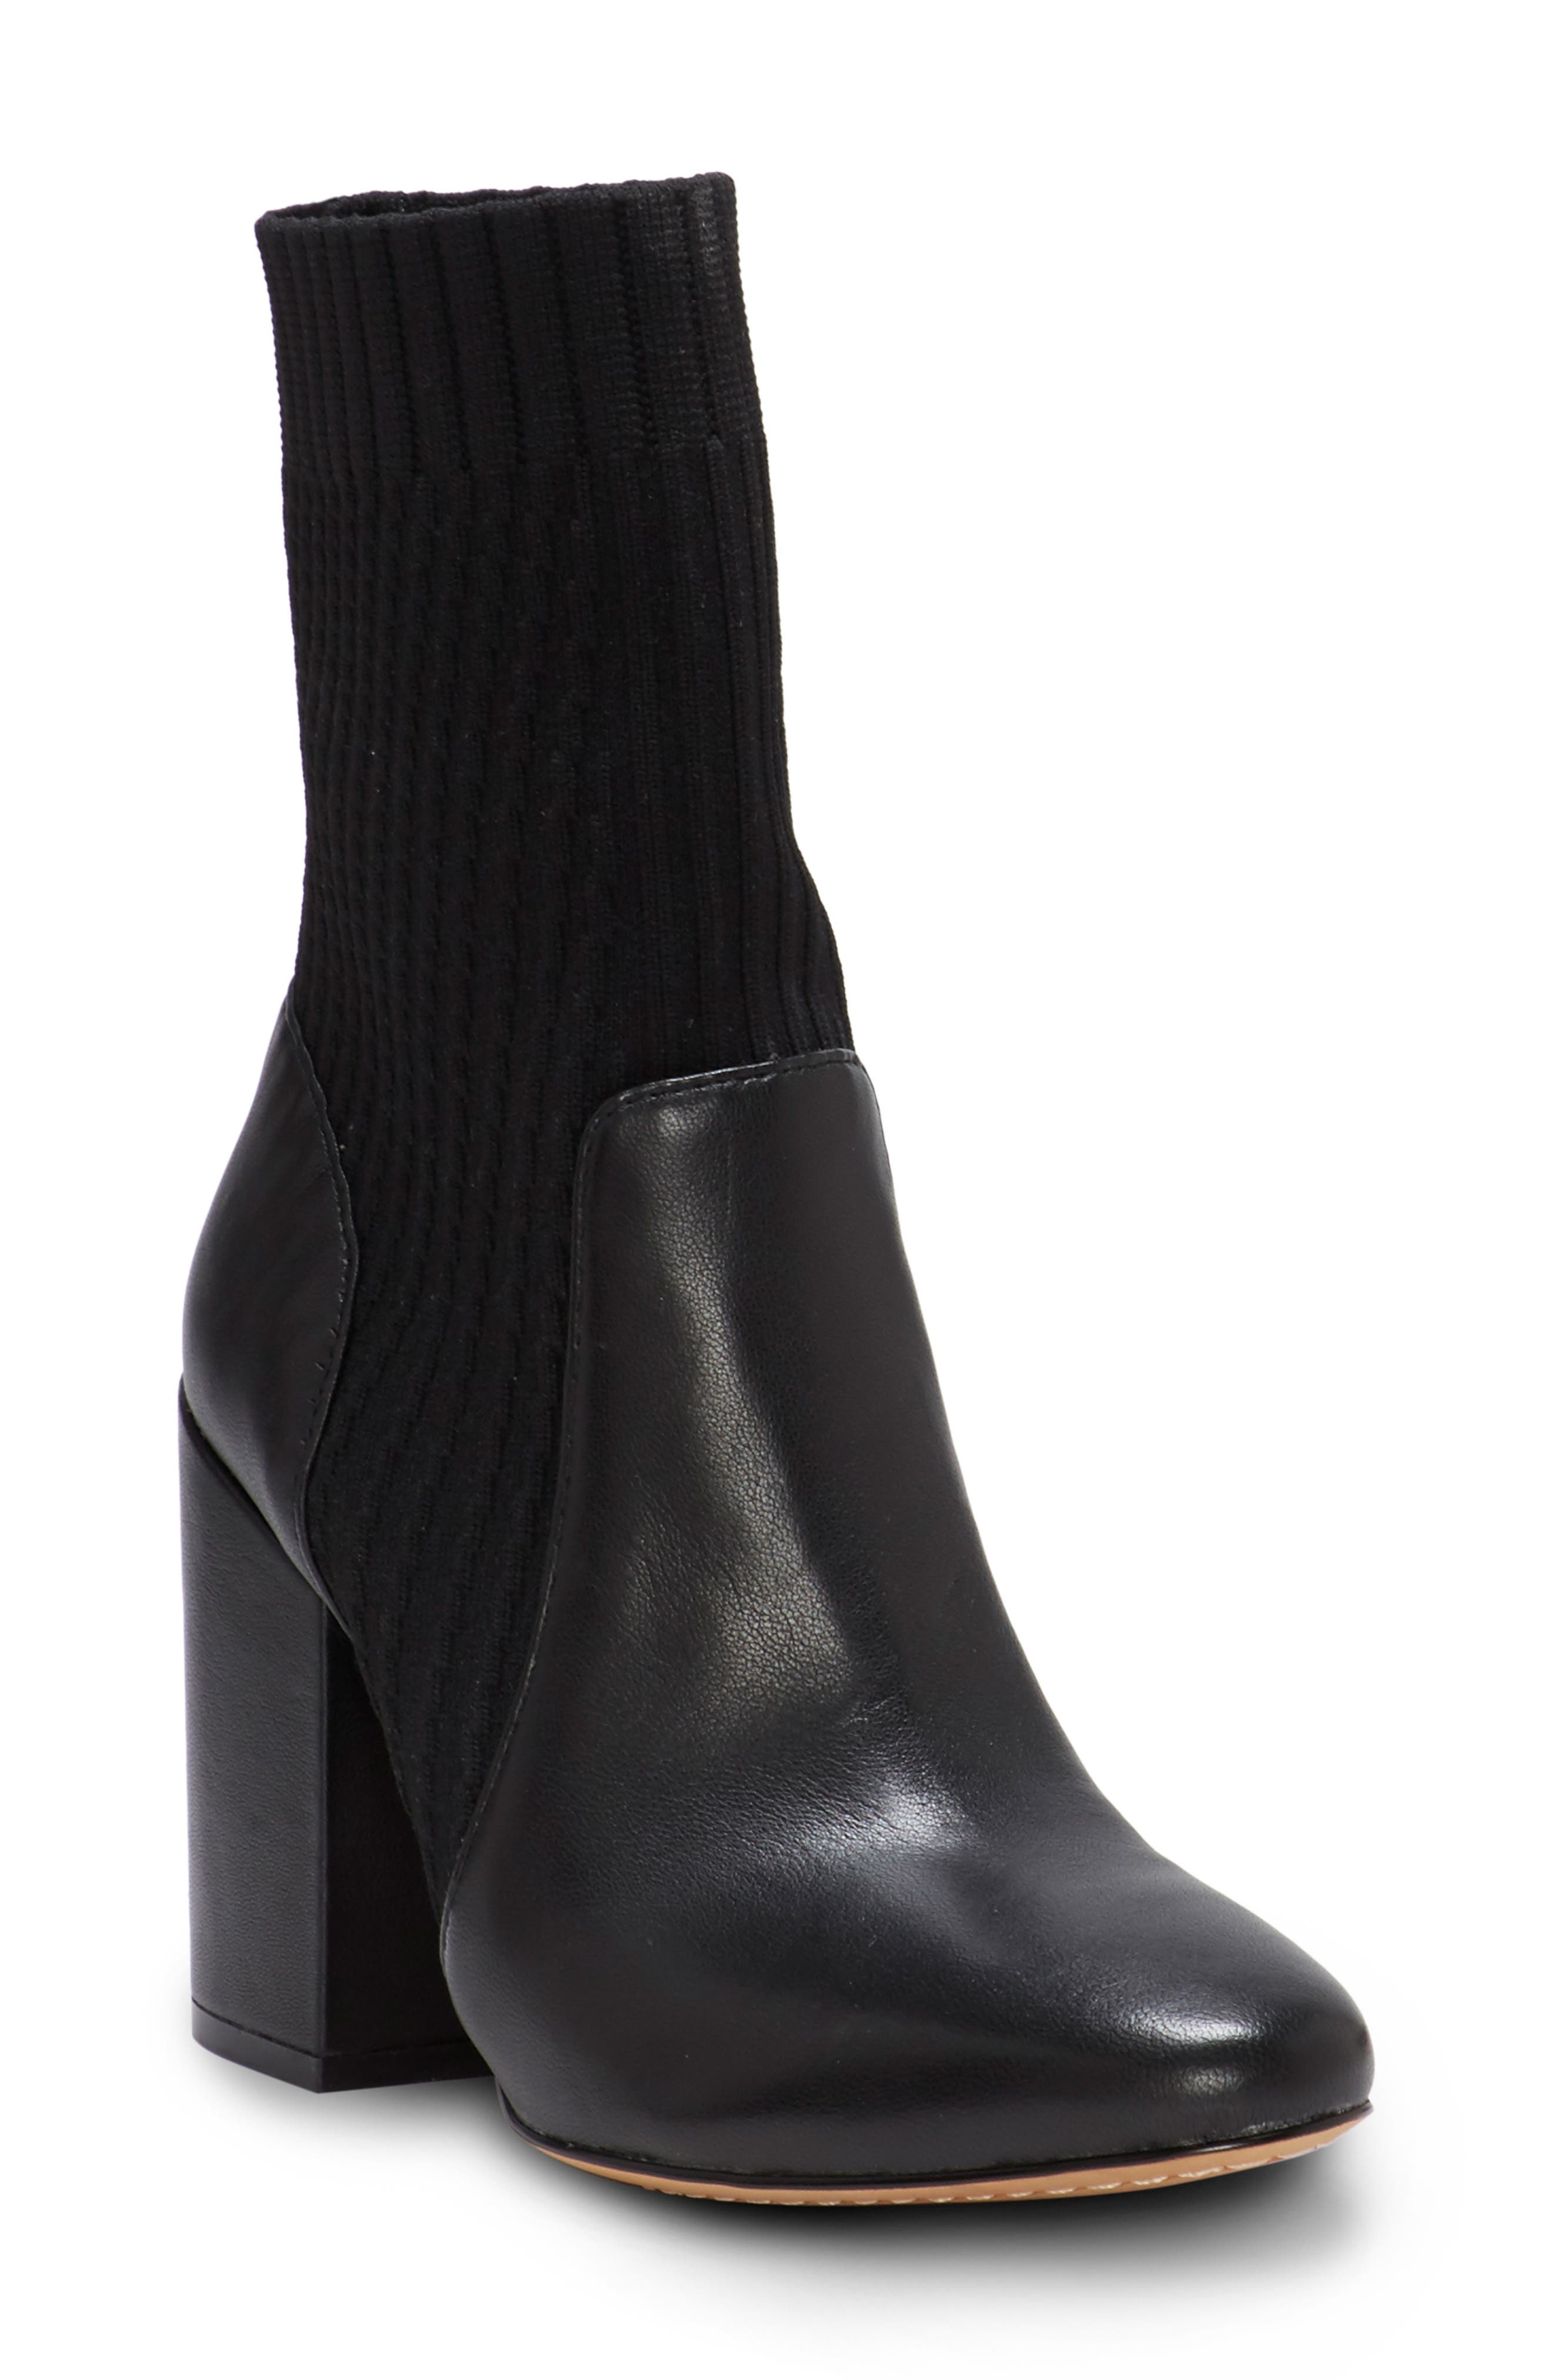 VINCE CAMUTO, Diandra Boot, Main thumbnail 1, color, BLACK LEATHER